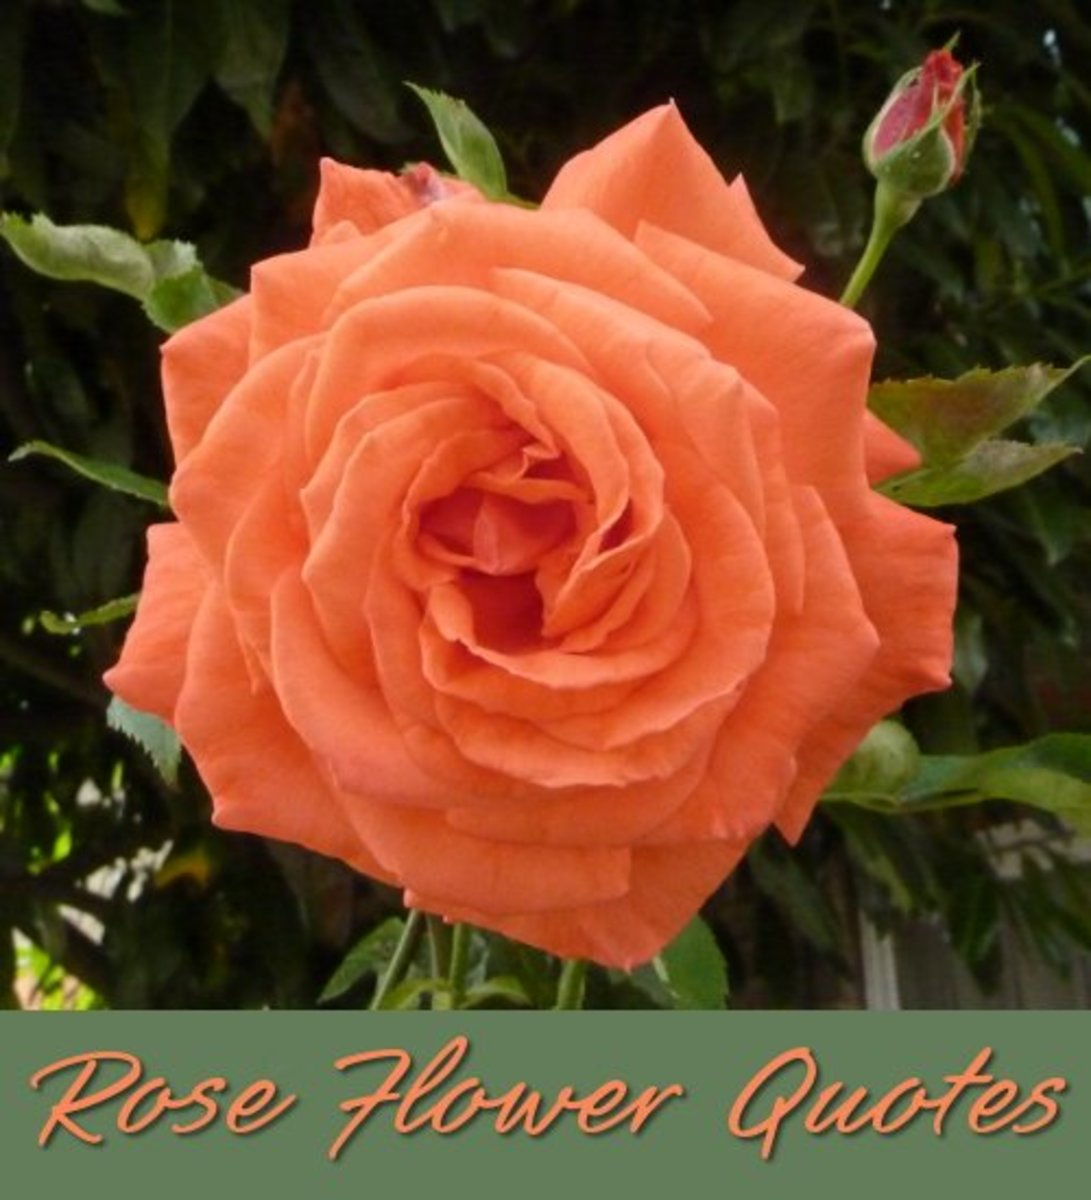 Beautiful Quotes About the Rose Flower